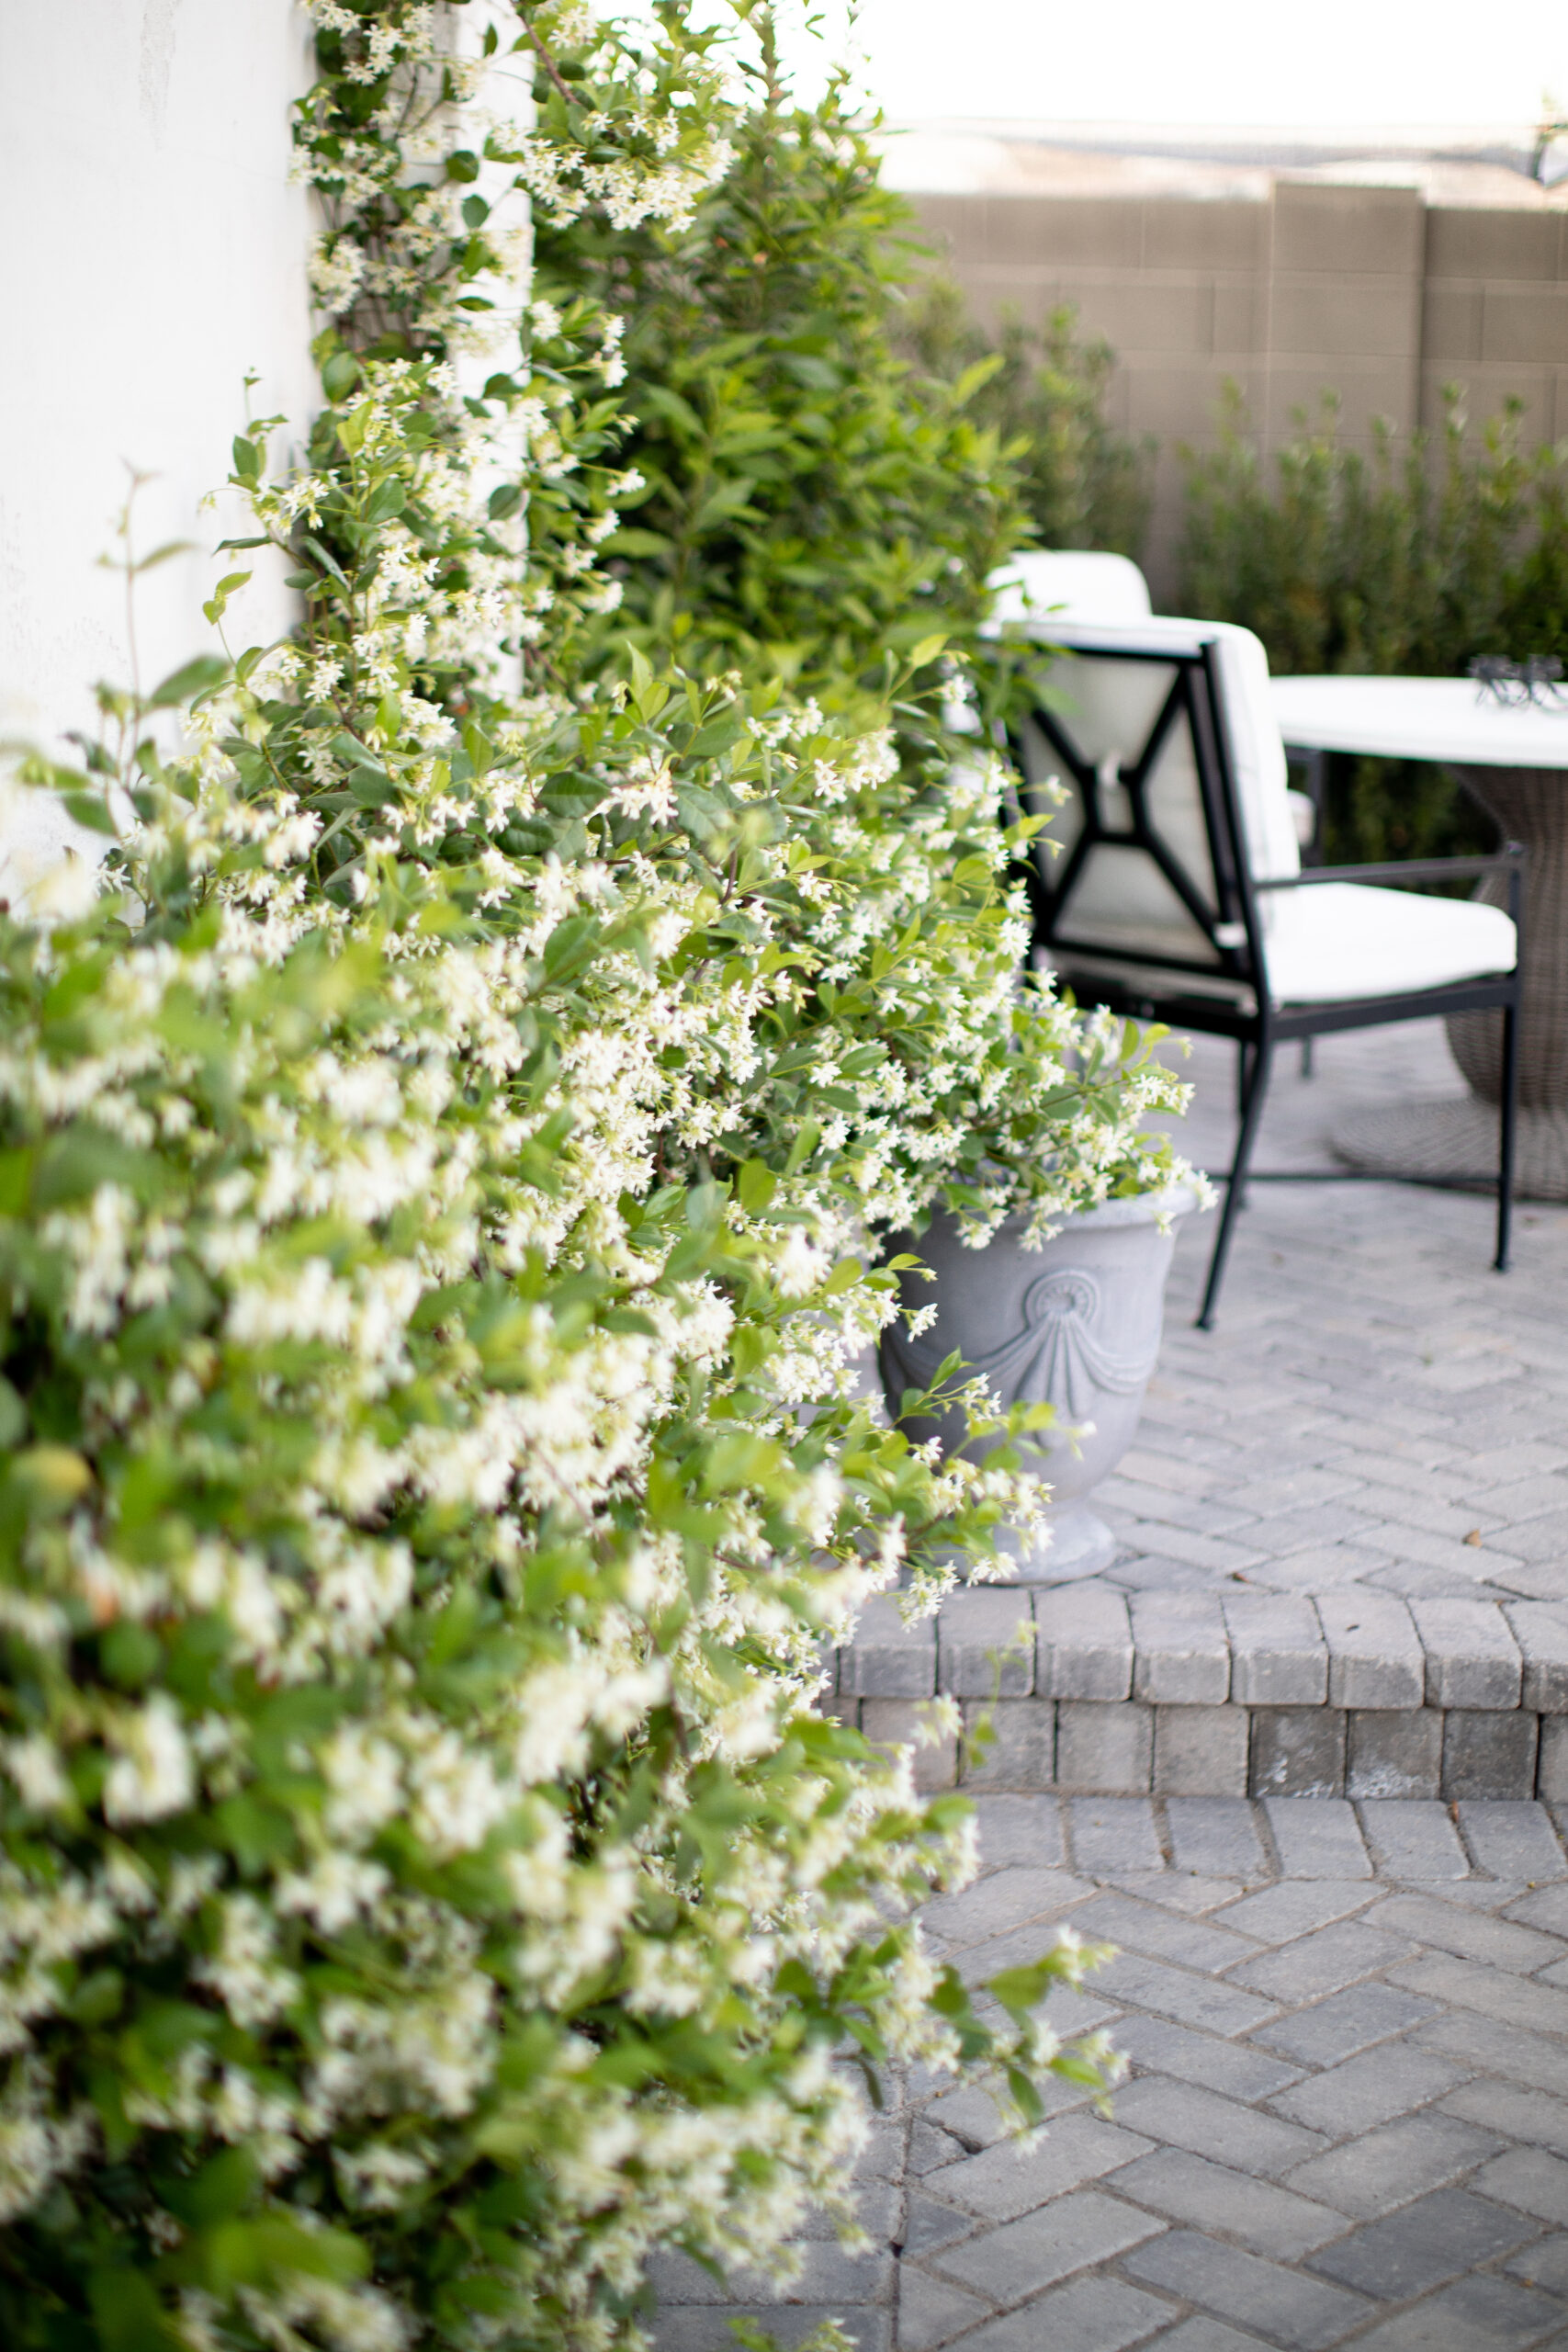 Outdoor Space with Rows of Jasmine Vines